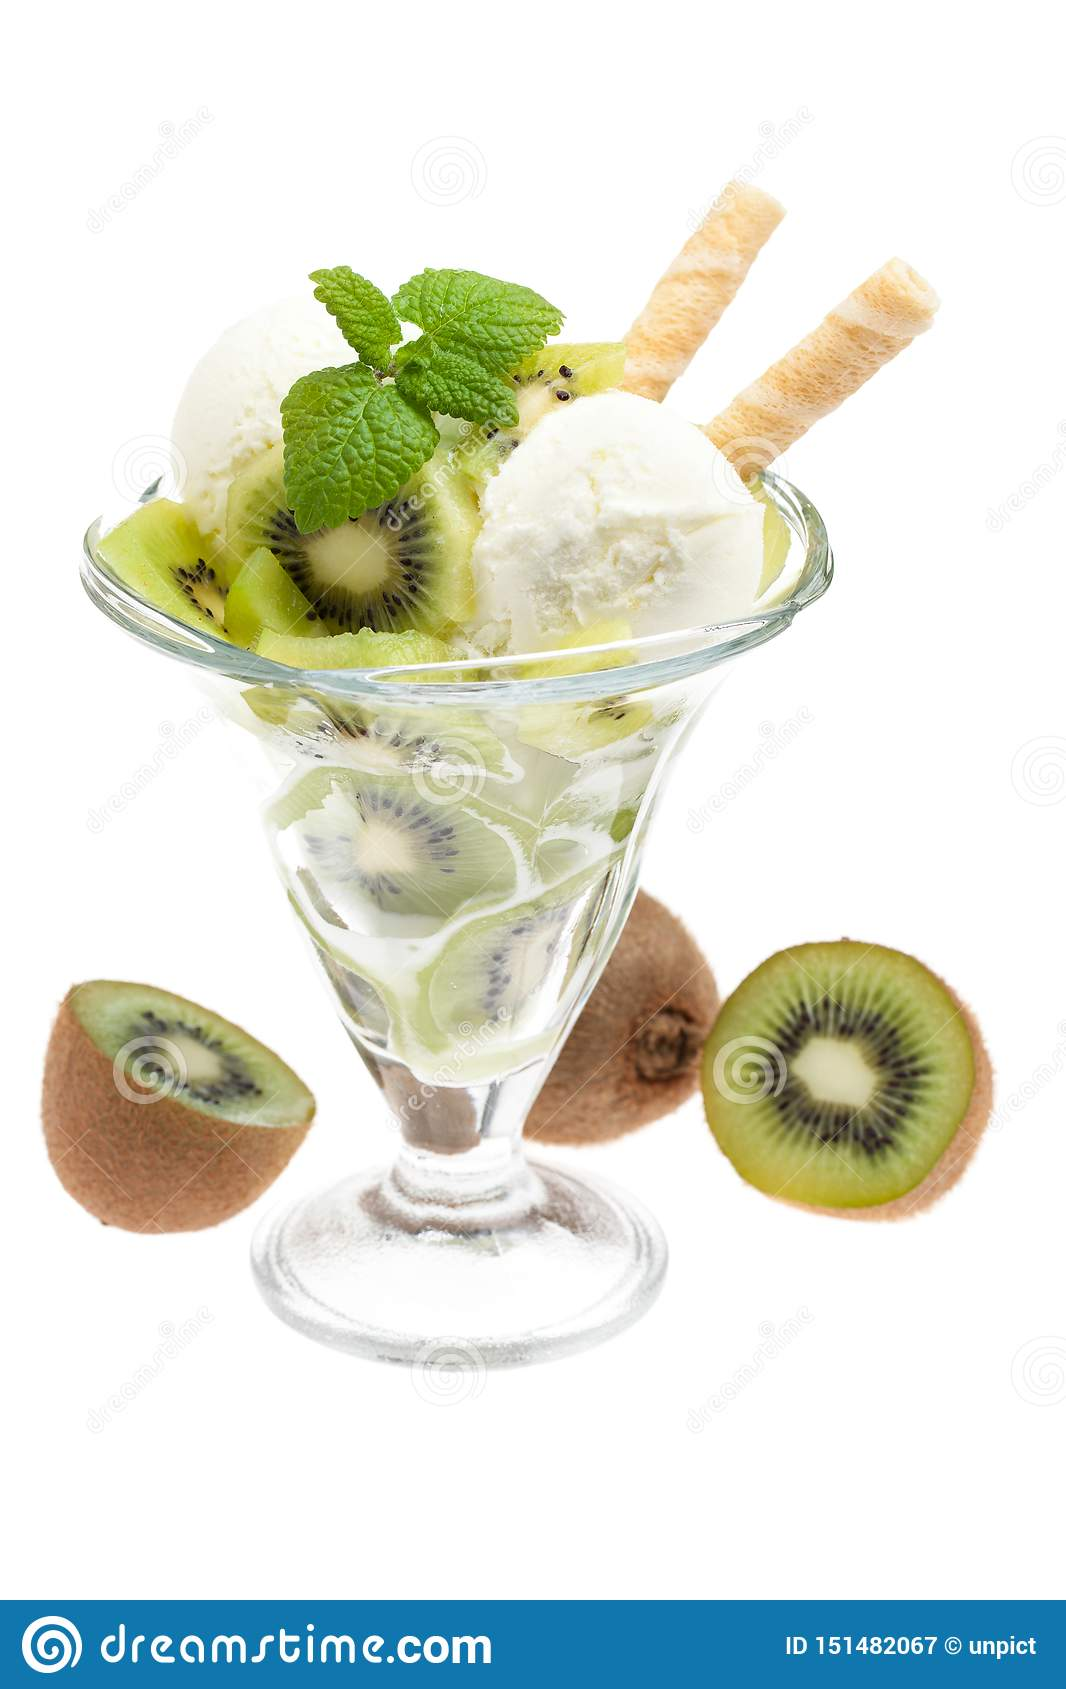 A bowl of kiwi ice cream with kiwis and cones isolated on white background with waffles